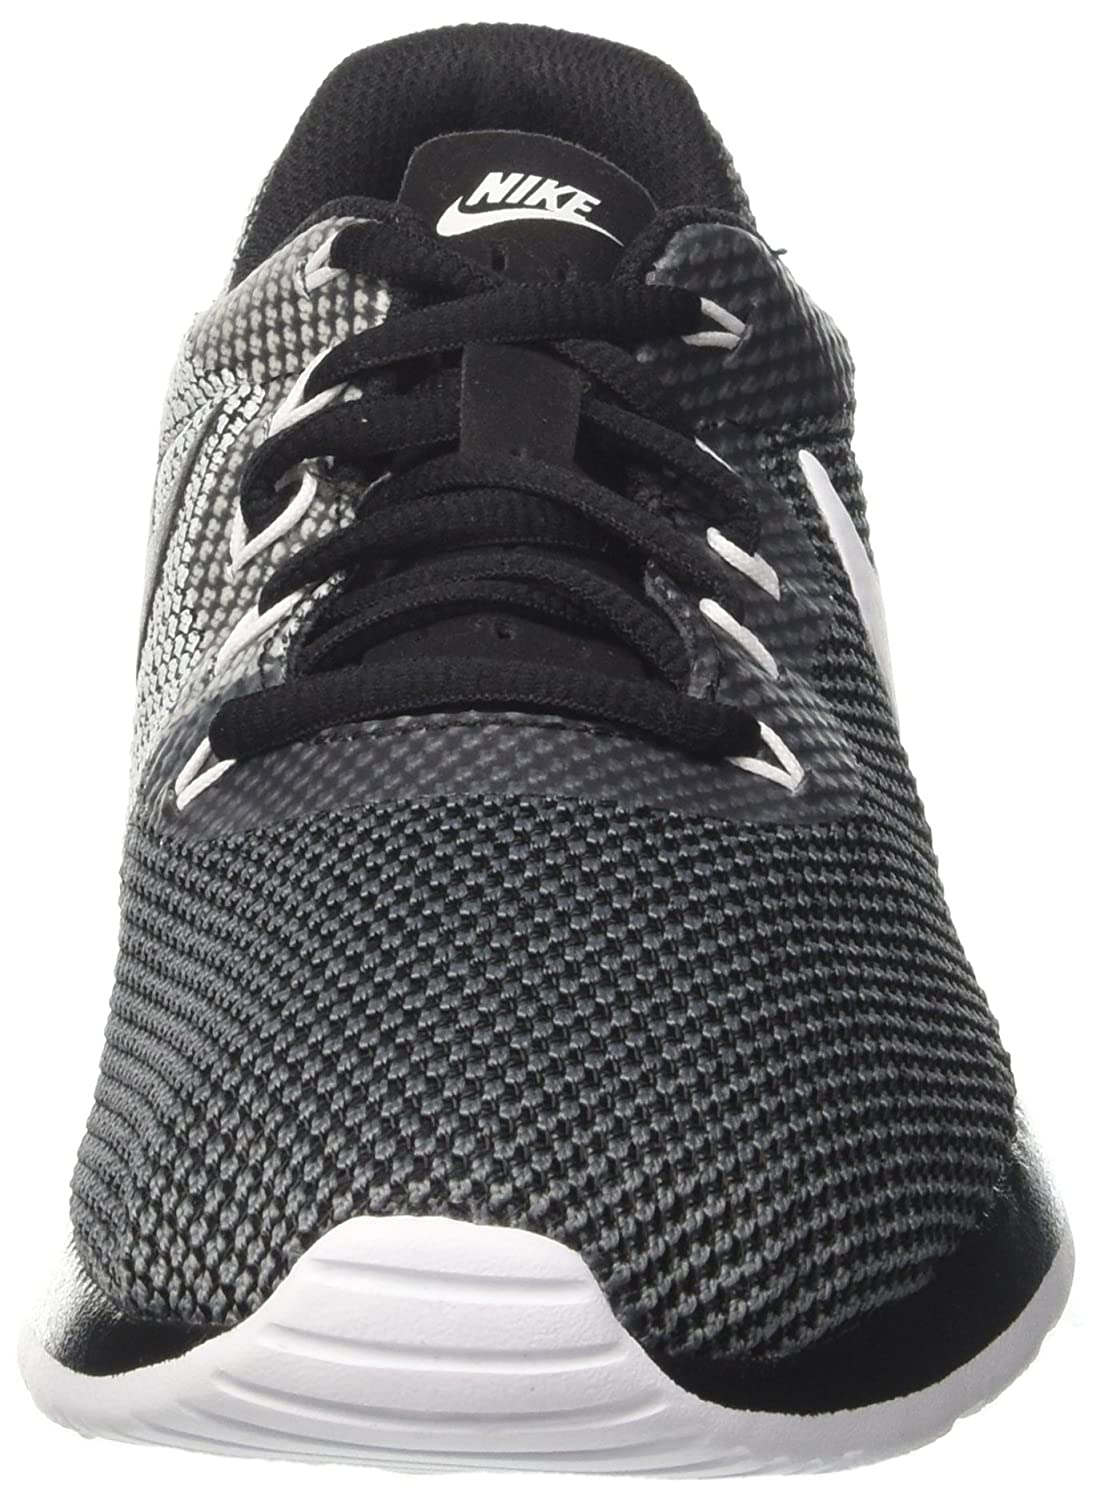 size 40 55b95 65ae3 Amazon.com  NIKE Mens Tanjun Sneakers, Breathable Textile Uppers and  Comfortable Lightweight Cushioning  Fashion Sneakers